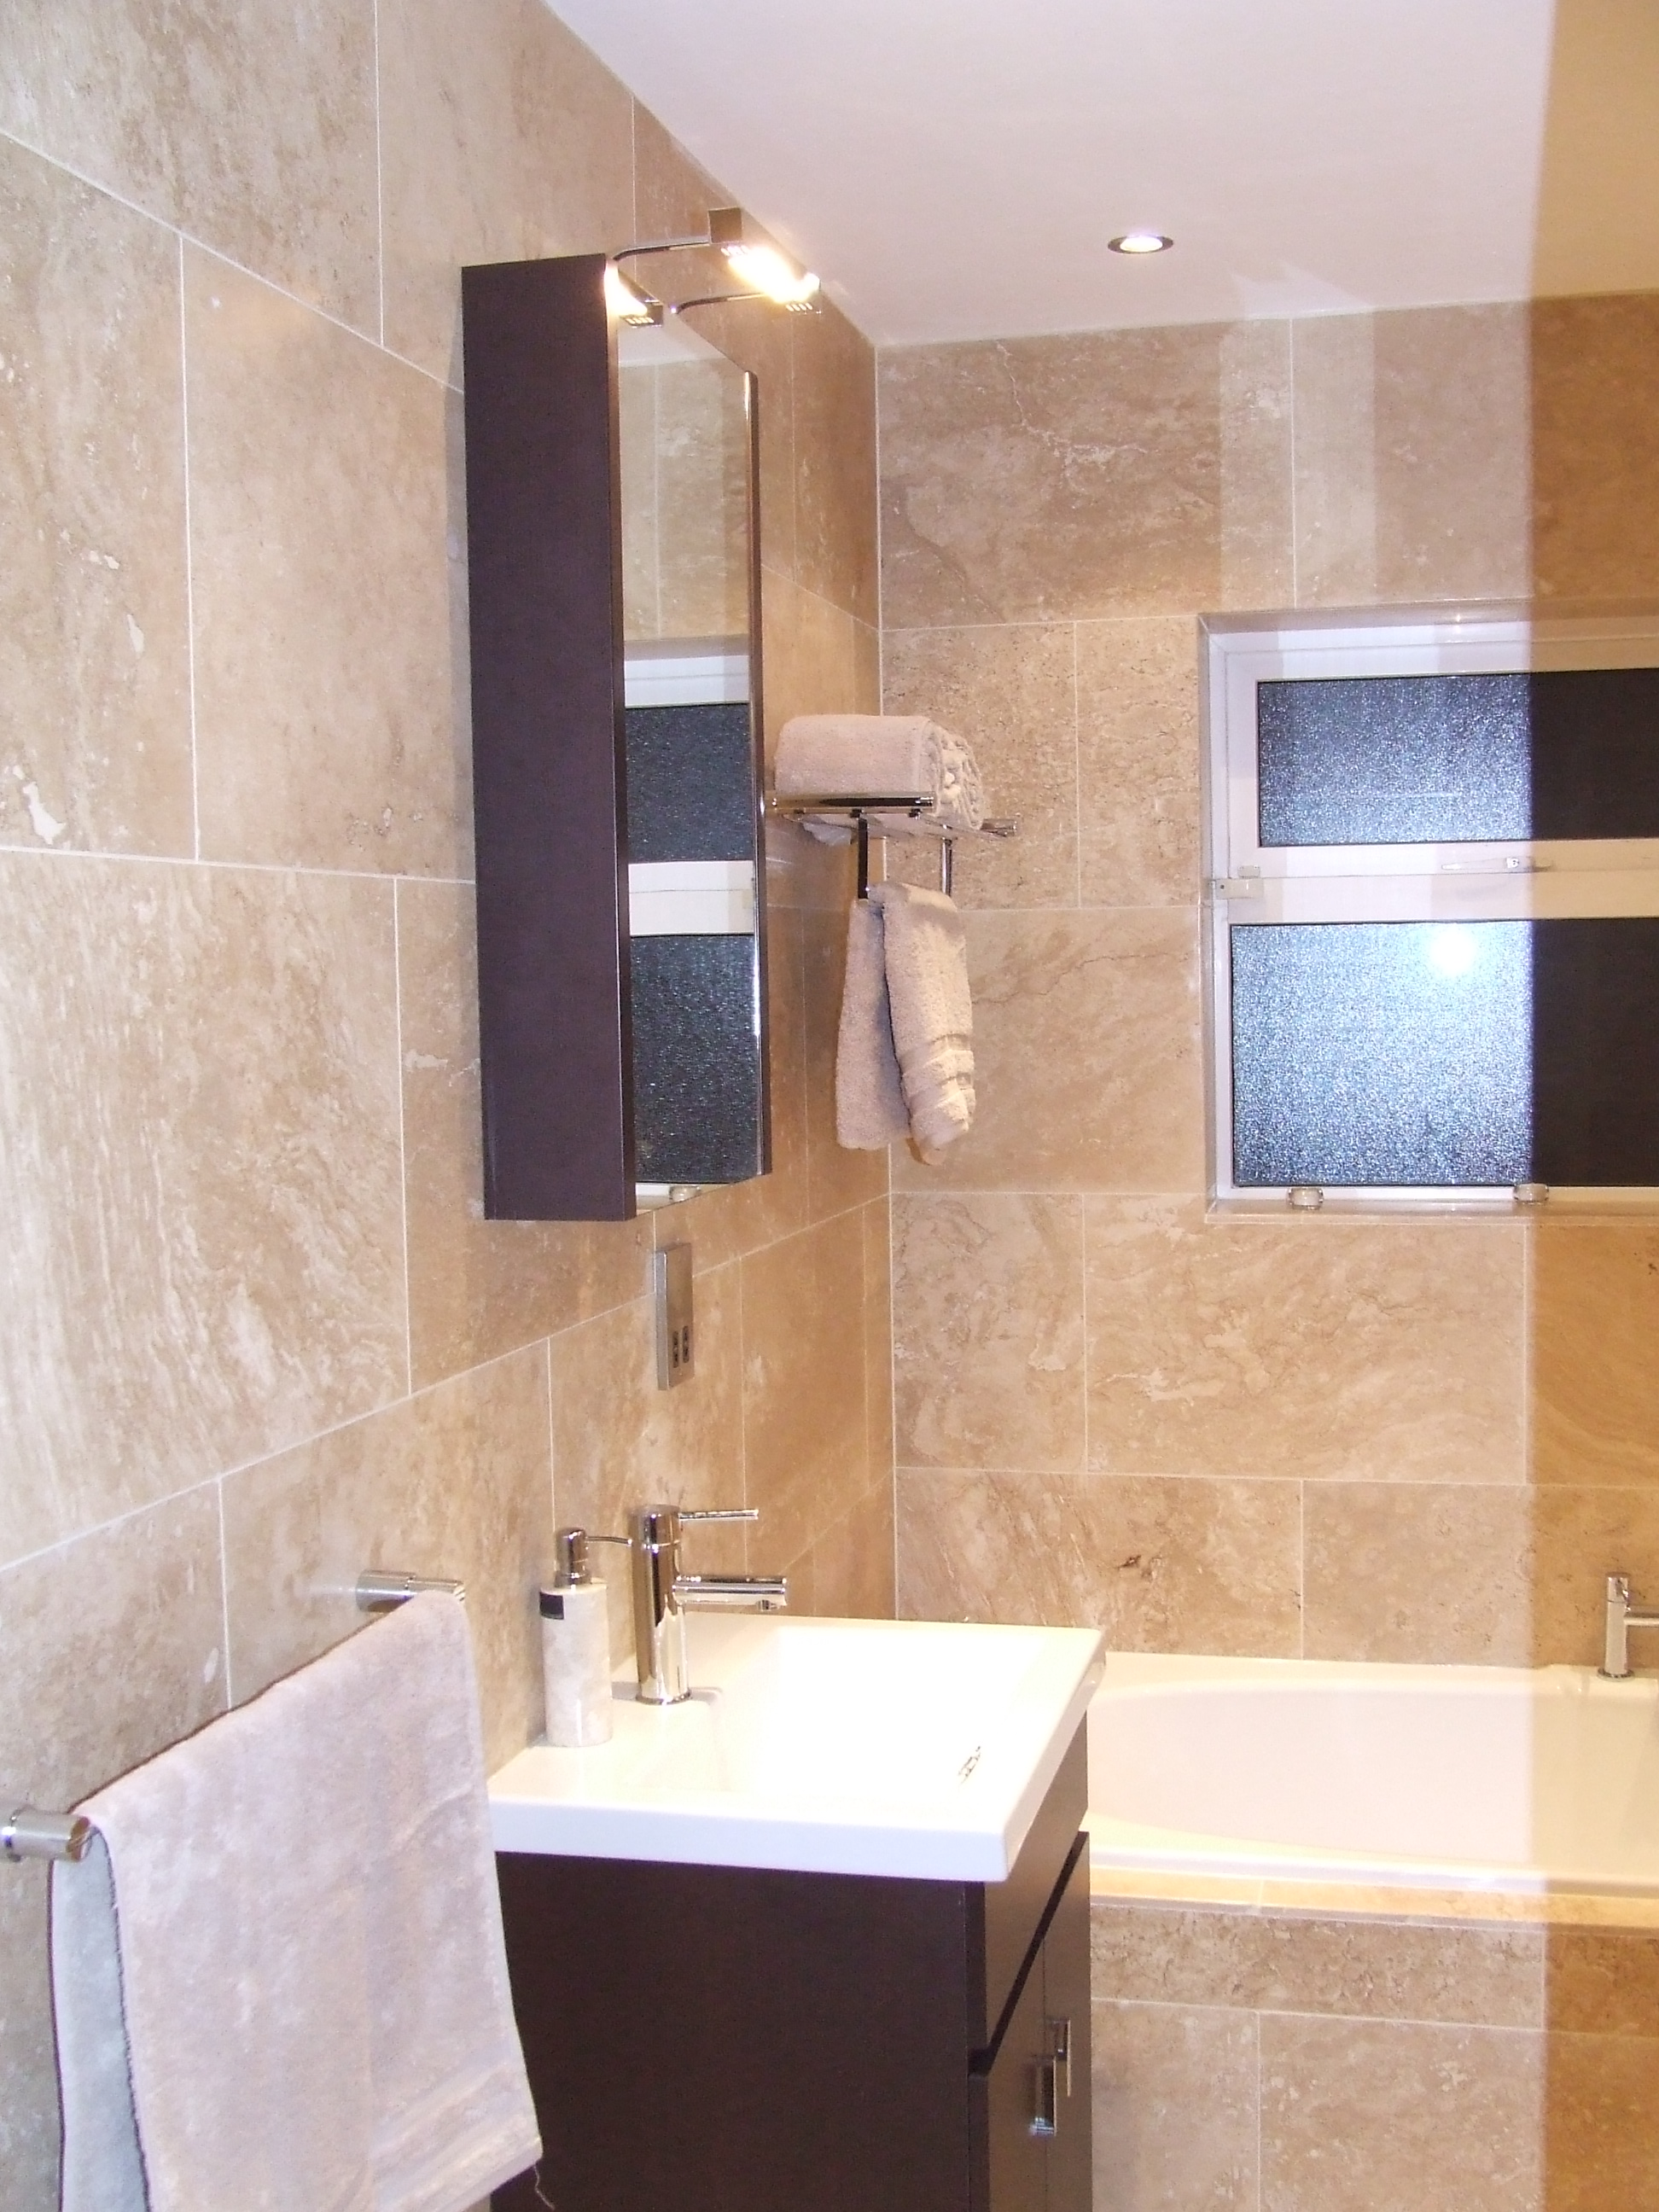 Modern Bathroom Revamp In Lucan Co Dublin All Materials From Tubs And Tiles